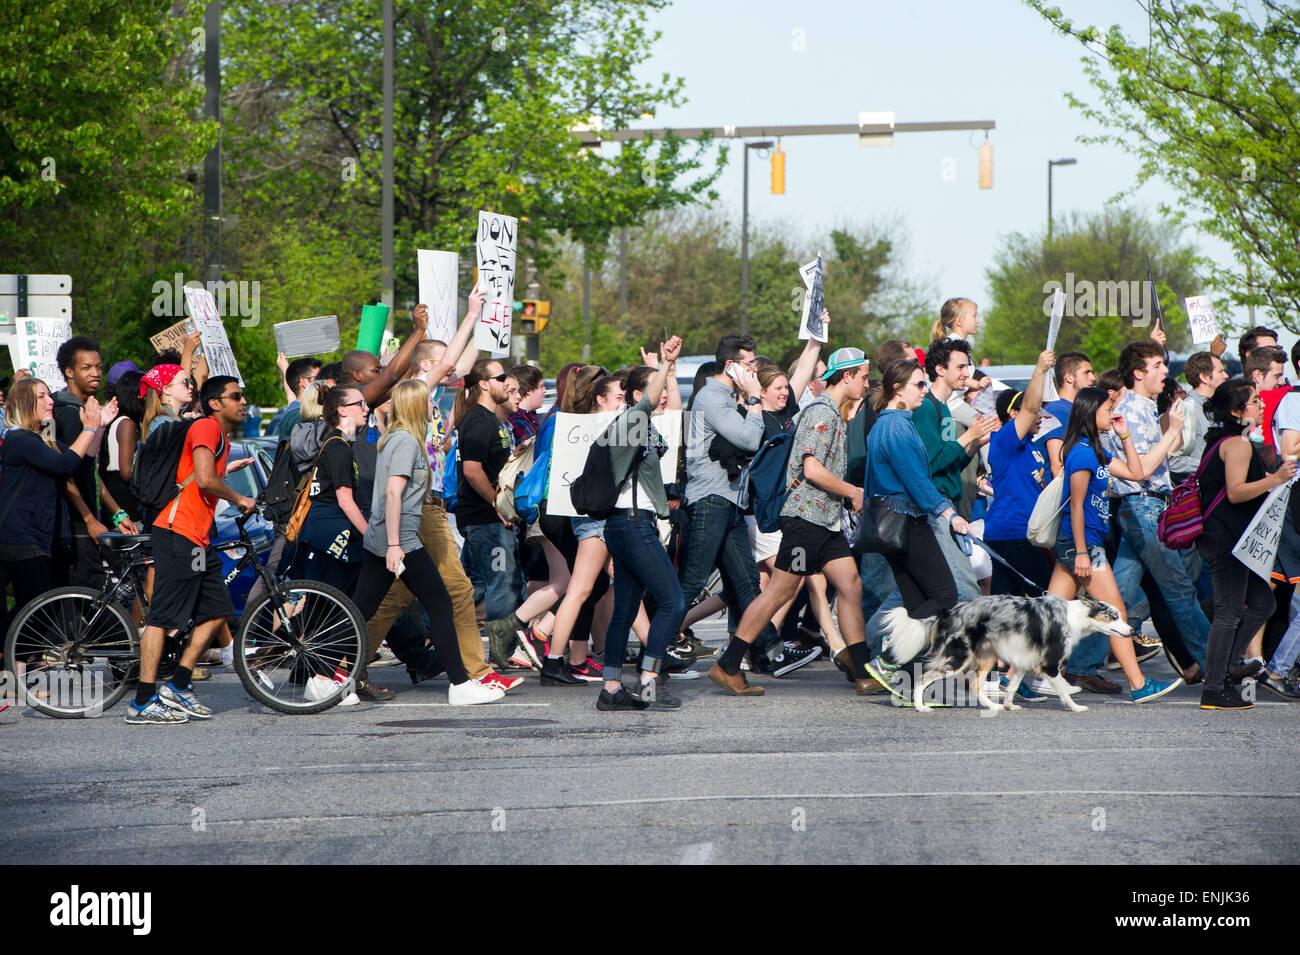 Baltimore demonstration protest march after Freddie Gray death - Stock Image